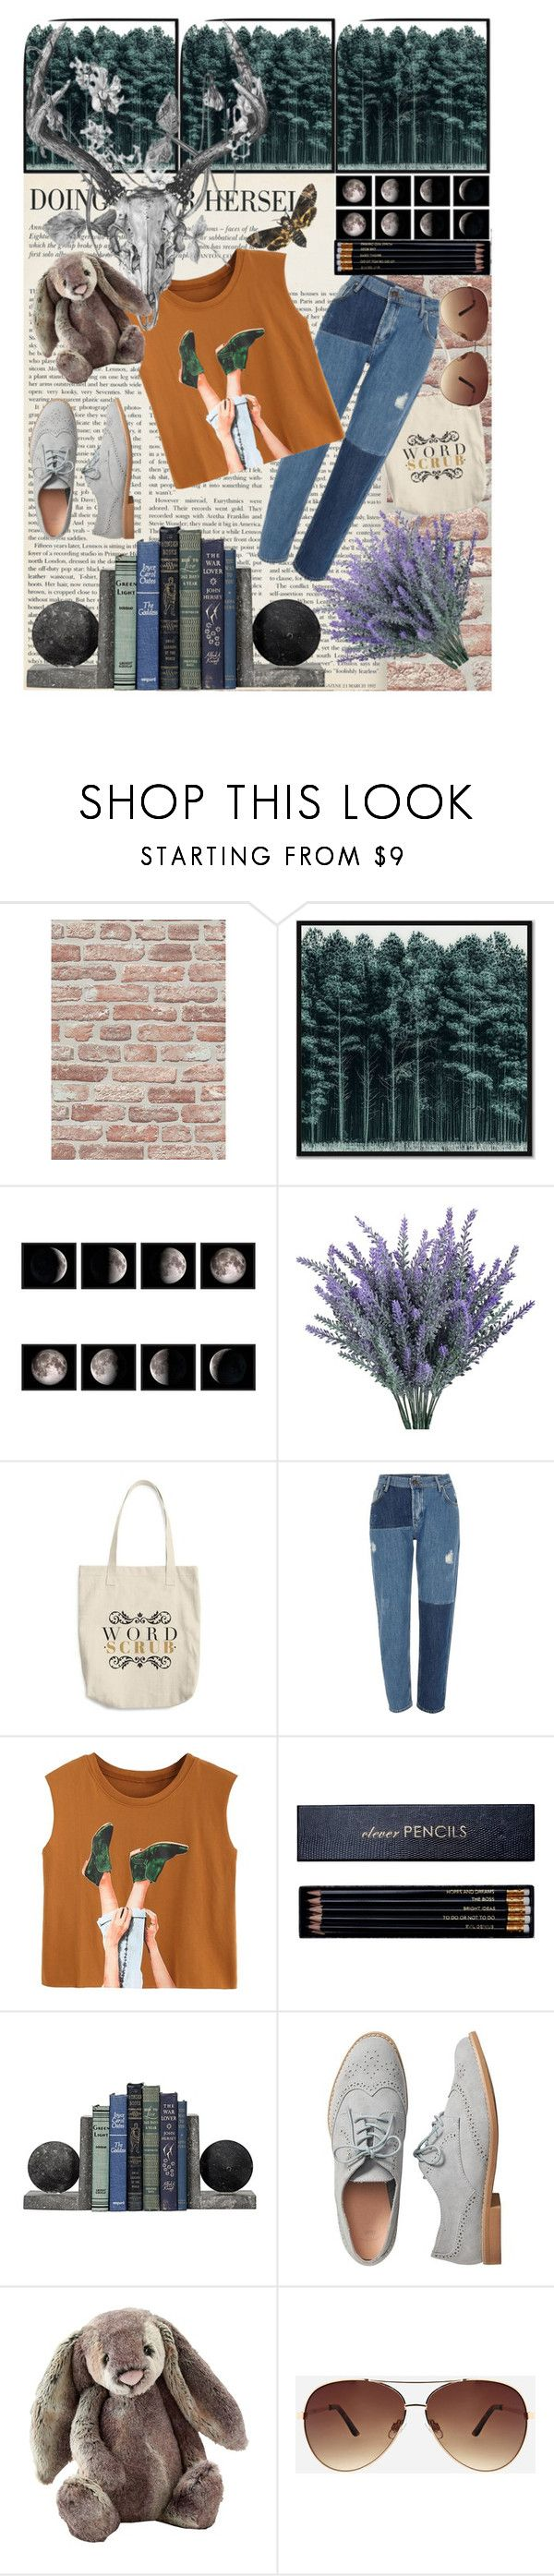 """City Nymph"" by lilmrsmocha ❤ liked on Polyvore featuring West Elm, River Island, Sloane Stationery, Gap, Jellycat and Ashley Stewart"